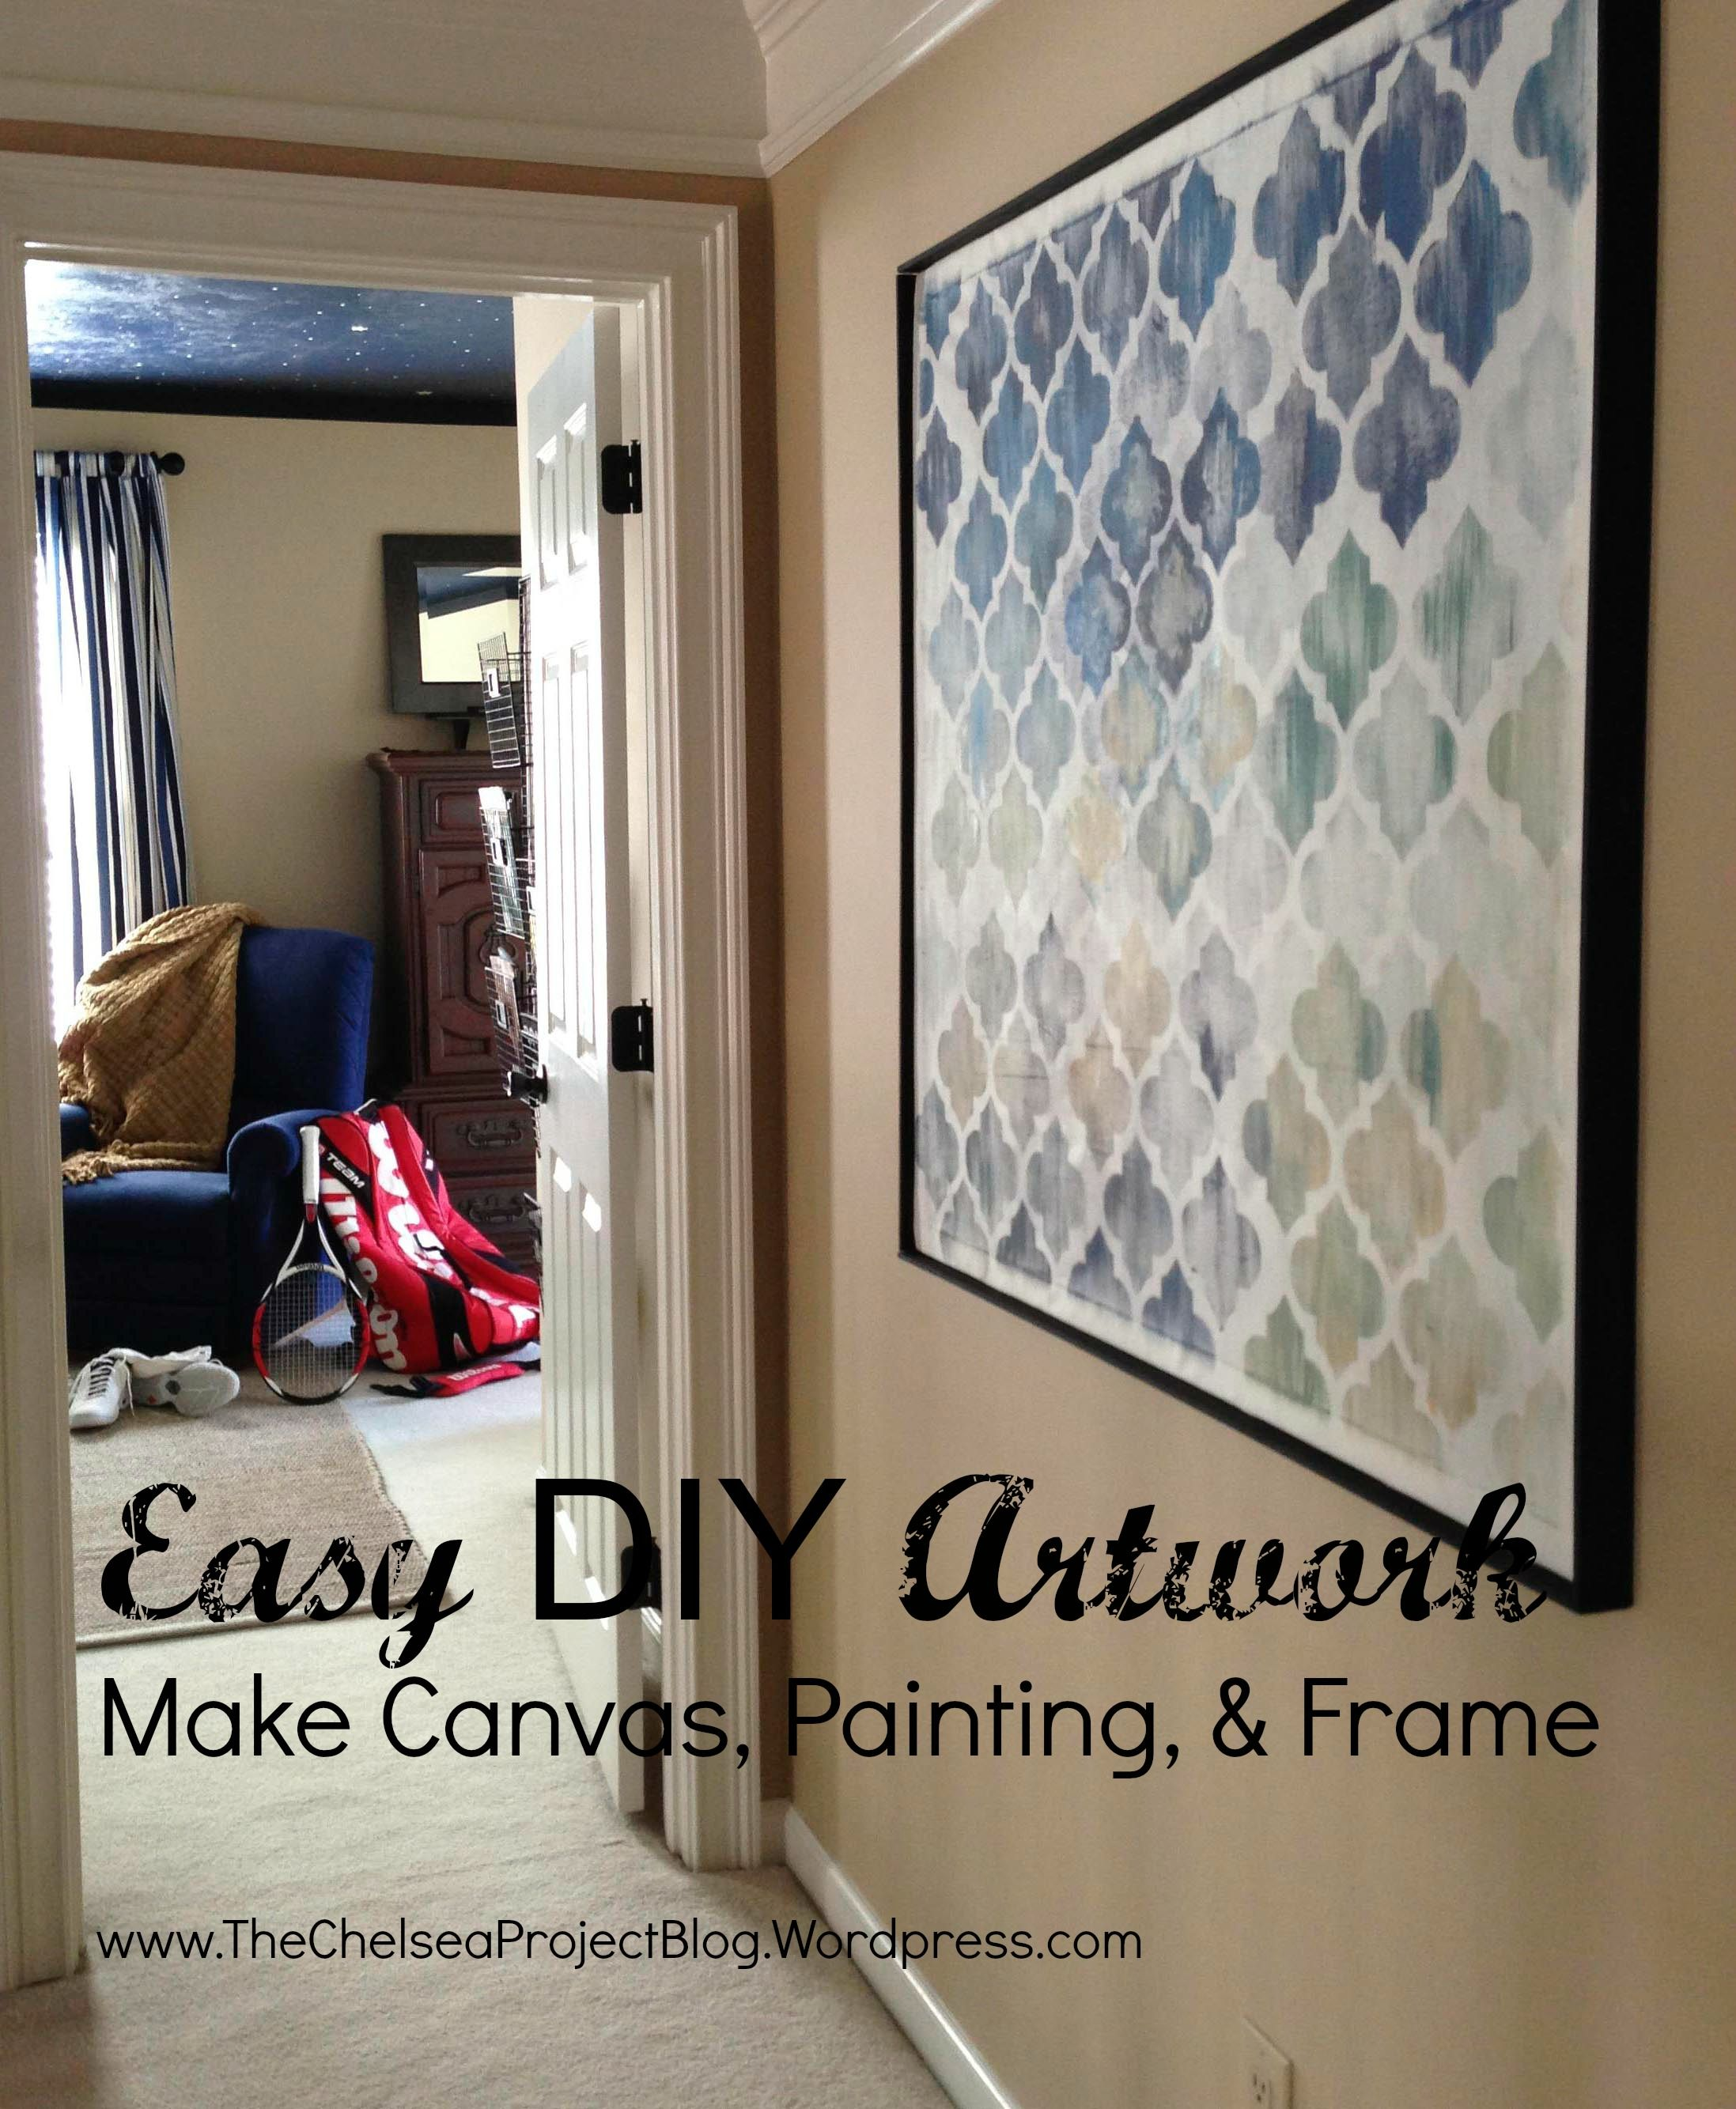 Diy artwork make canvas painting and frame the chelsea project blog